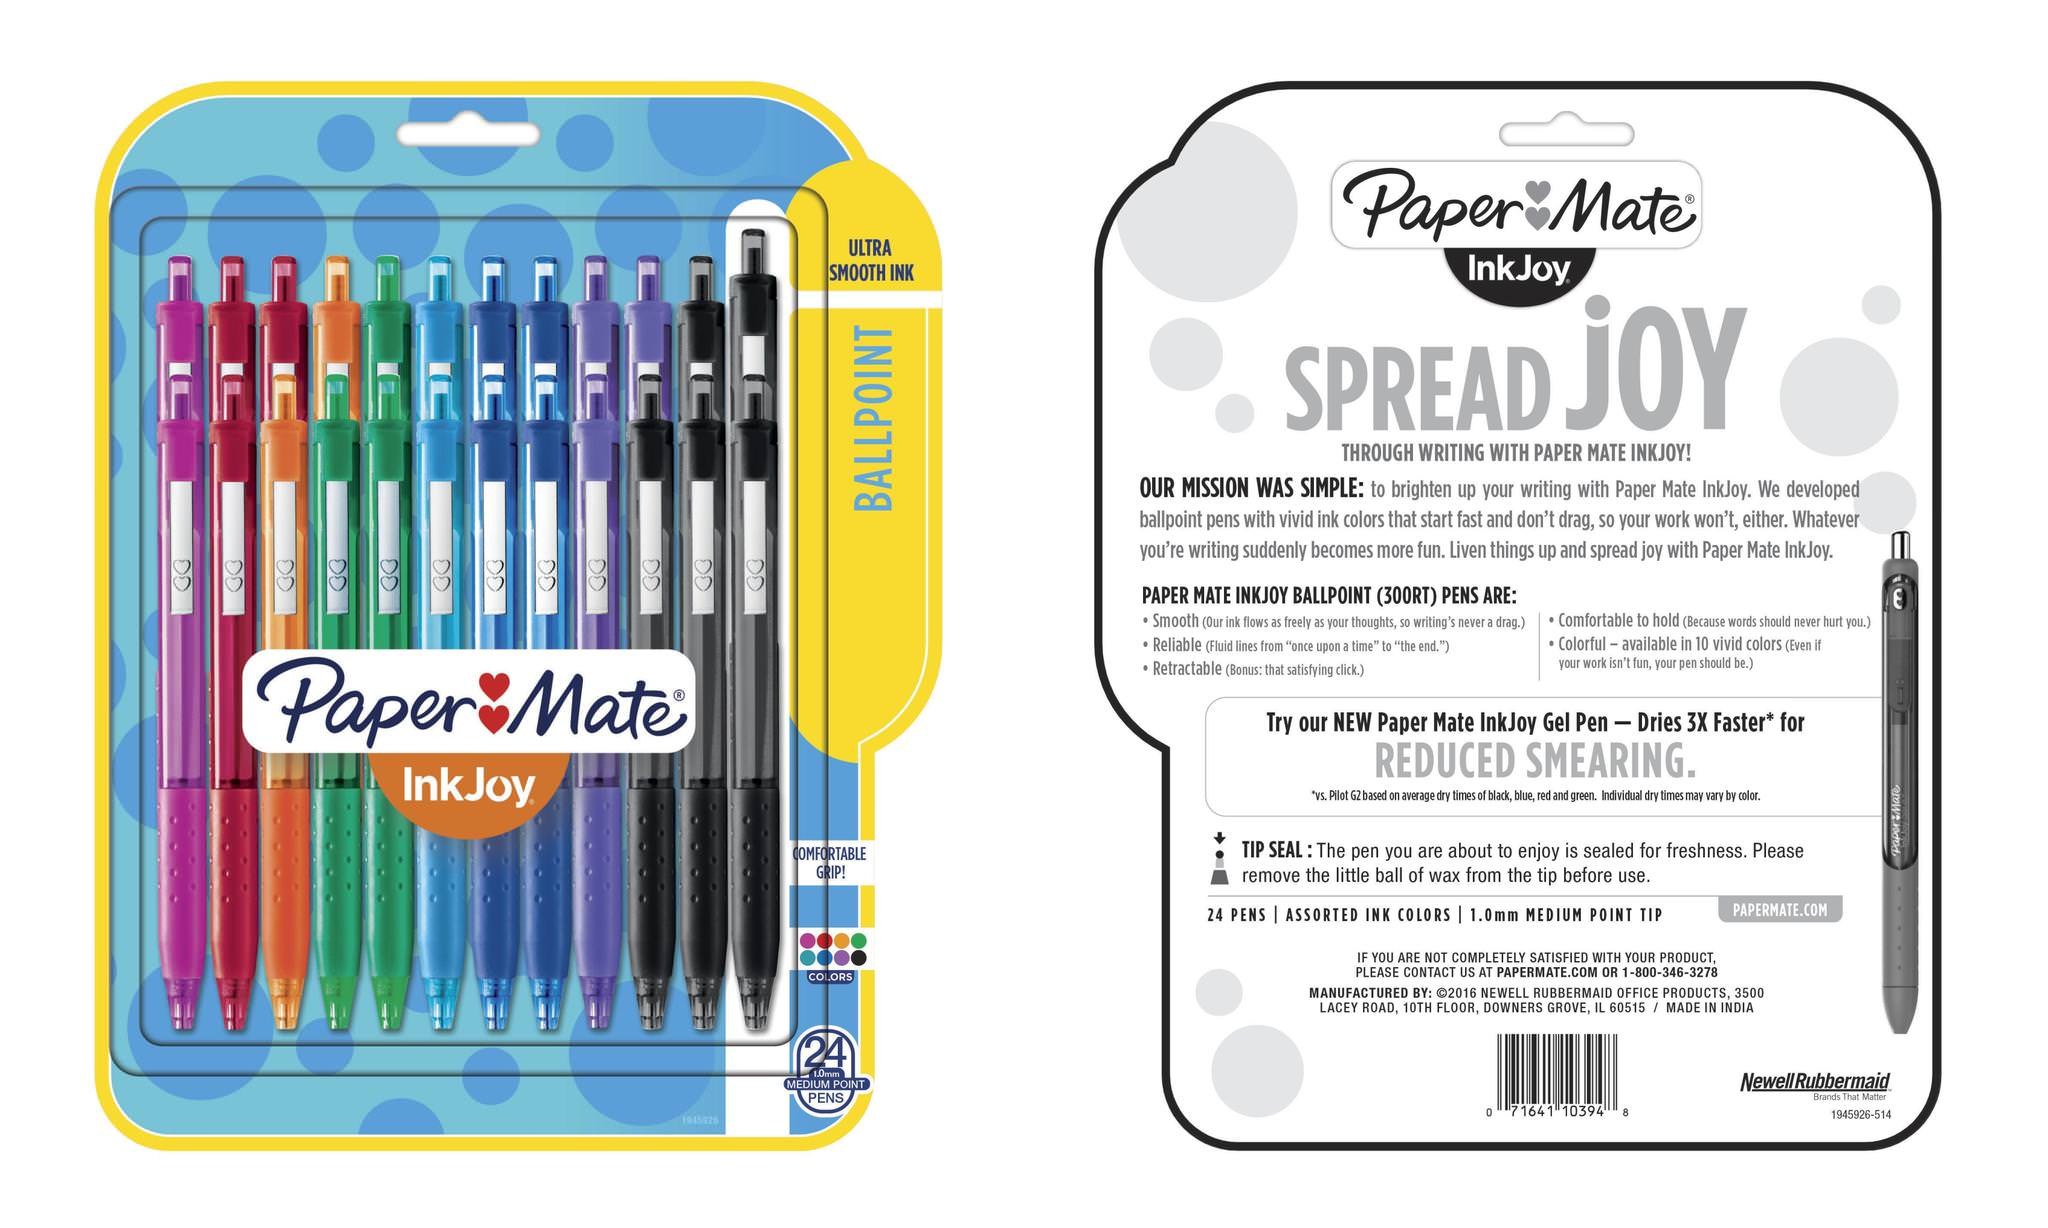 Paper Mate InkJoy Retractable Ballpoint Pen, 1mm, Assorted, 24 Pack by Newell Brands